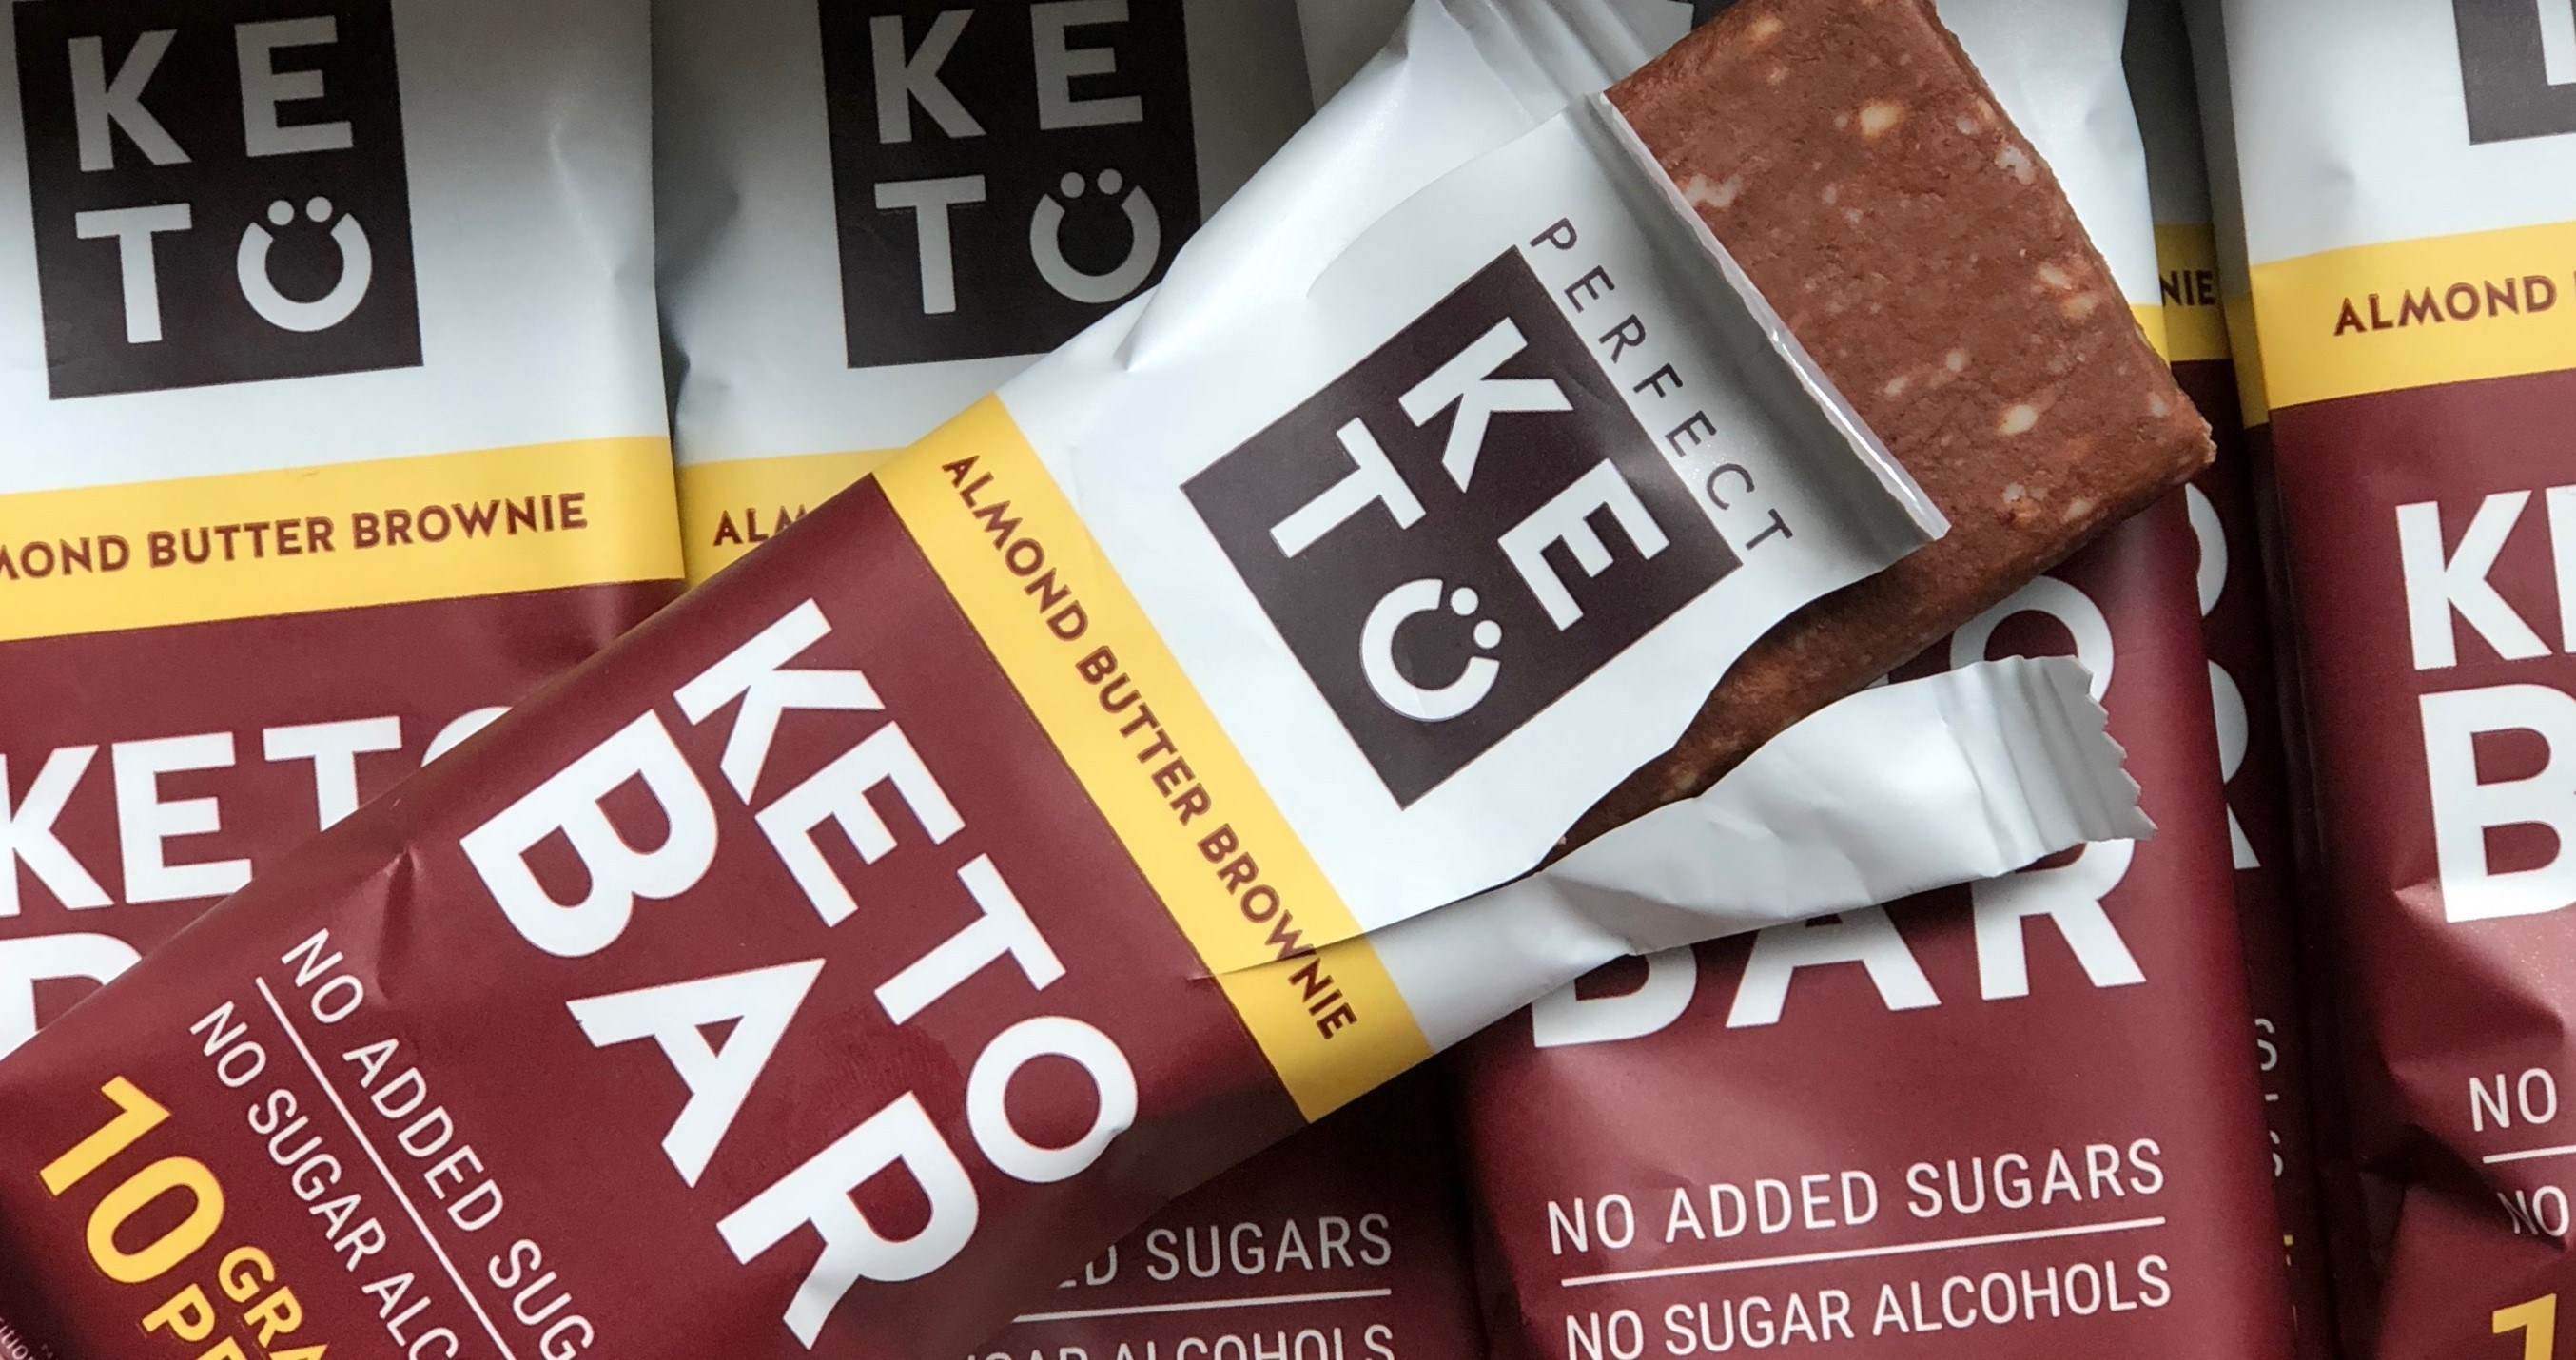 Perfect Keto Keto Bar Review - TryKetoWith Me